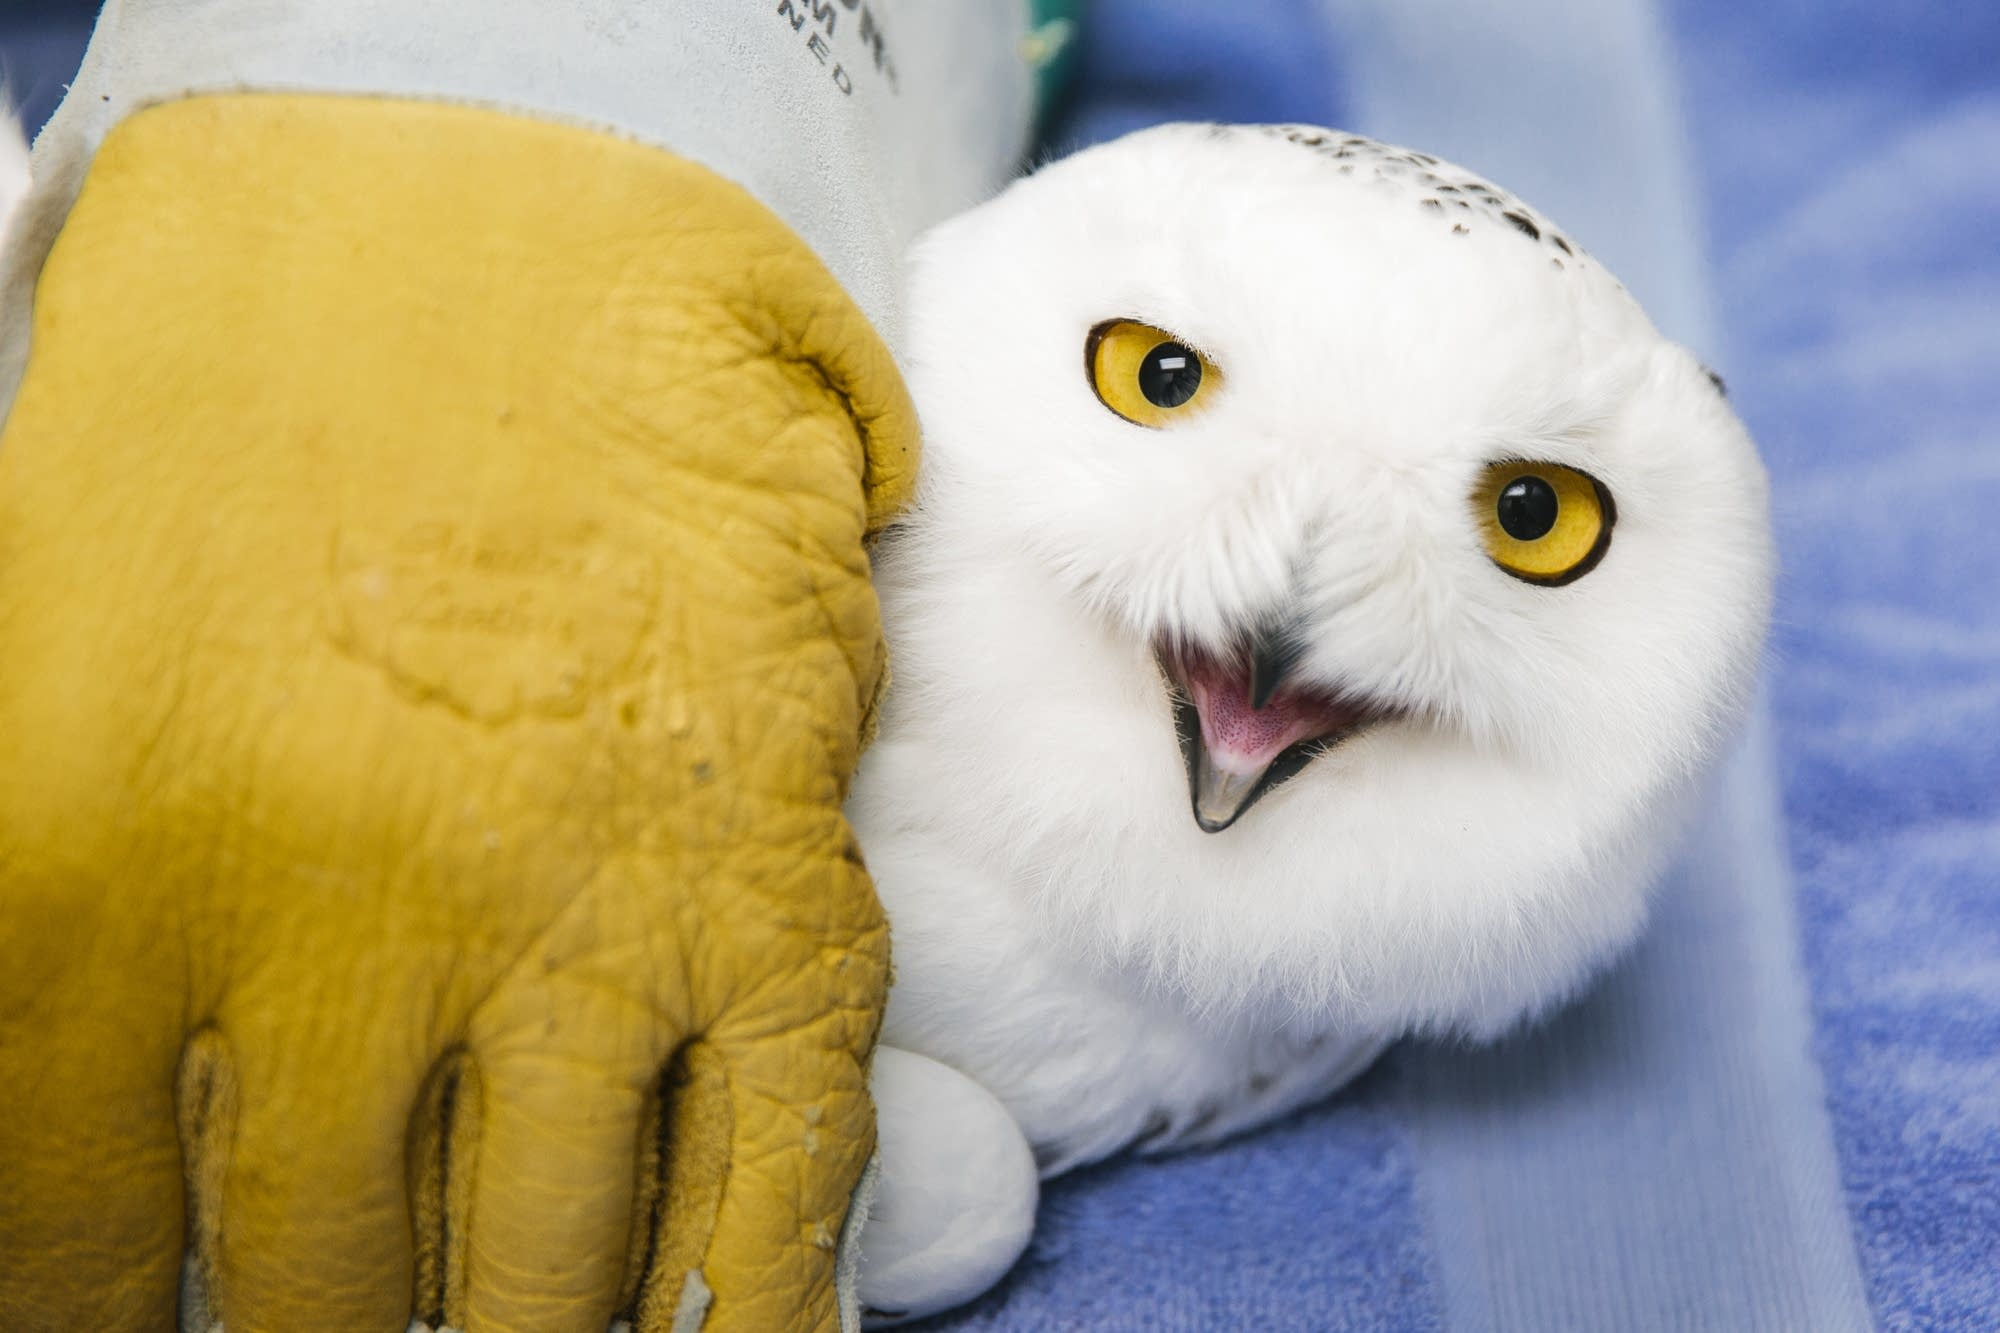 A snowy owl wakes up from anesthesia.